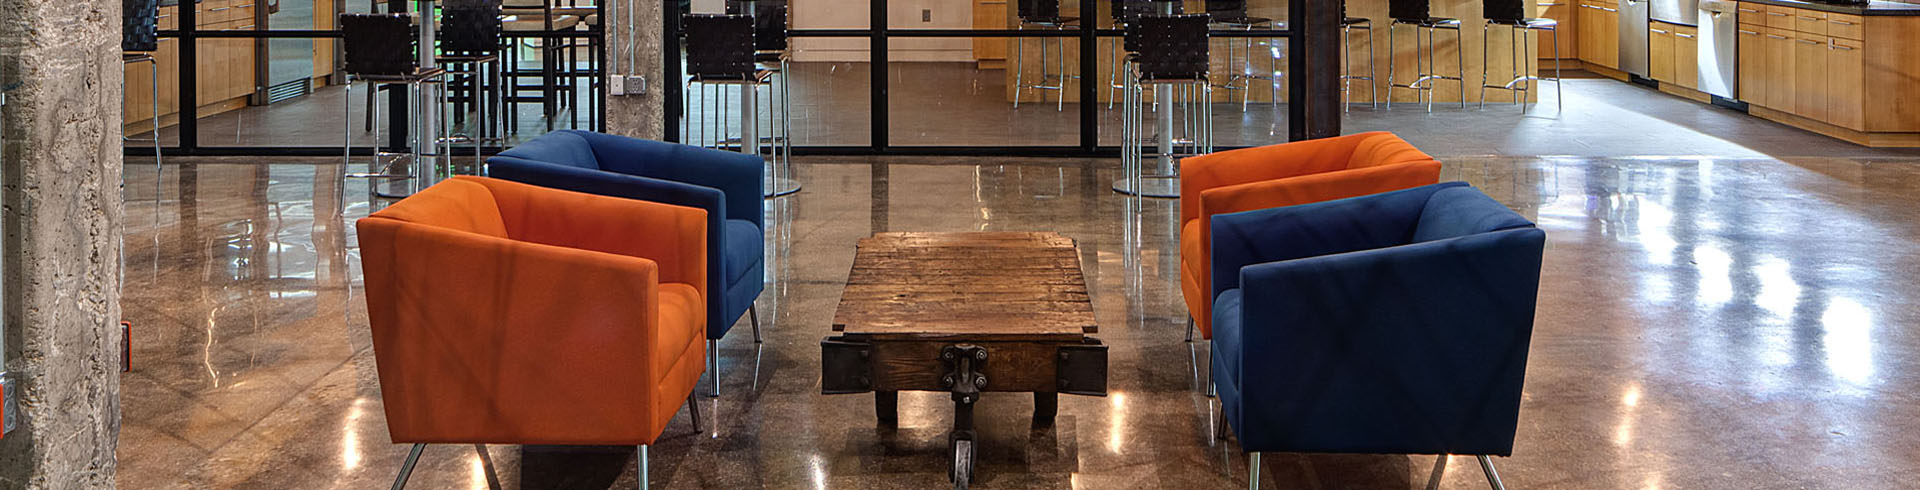 everything for offices new used office furniture in denver and rh everythingforoffices com craigslist denver office furniture craigslist denver office furniture